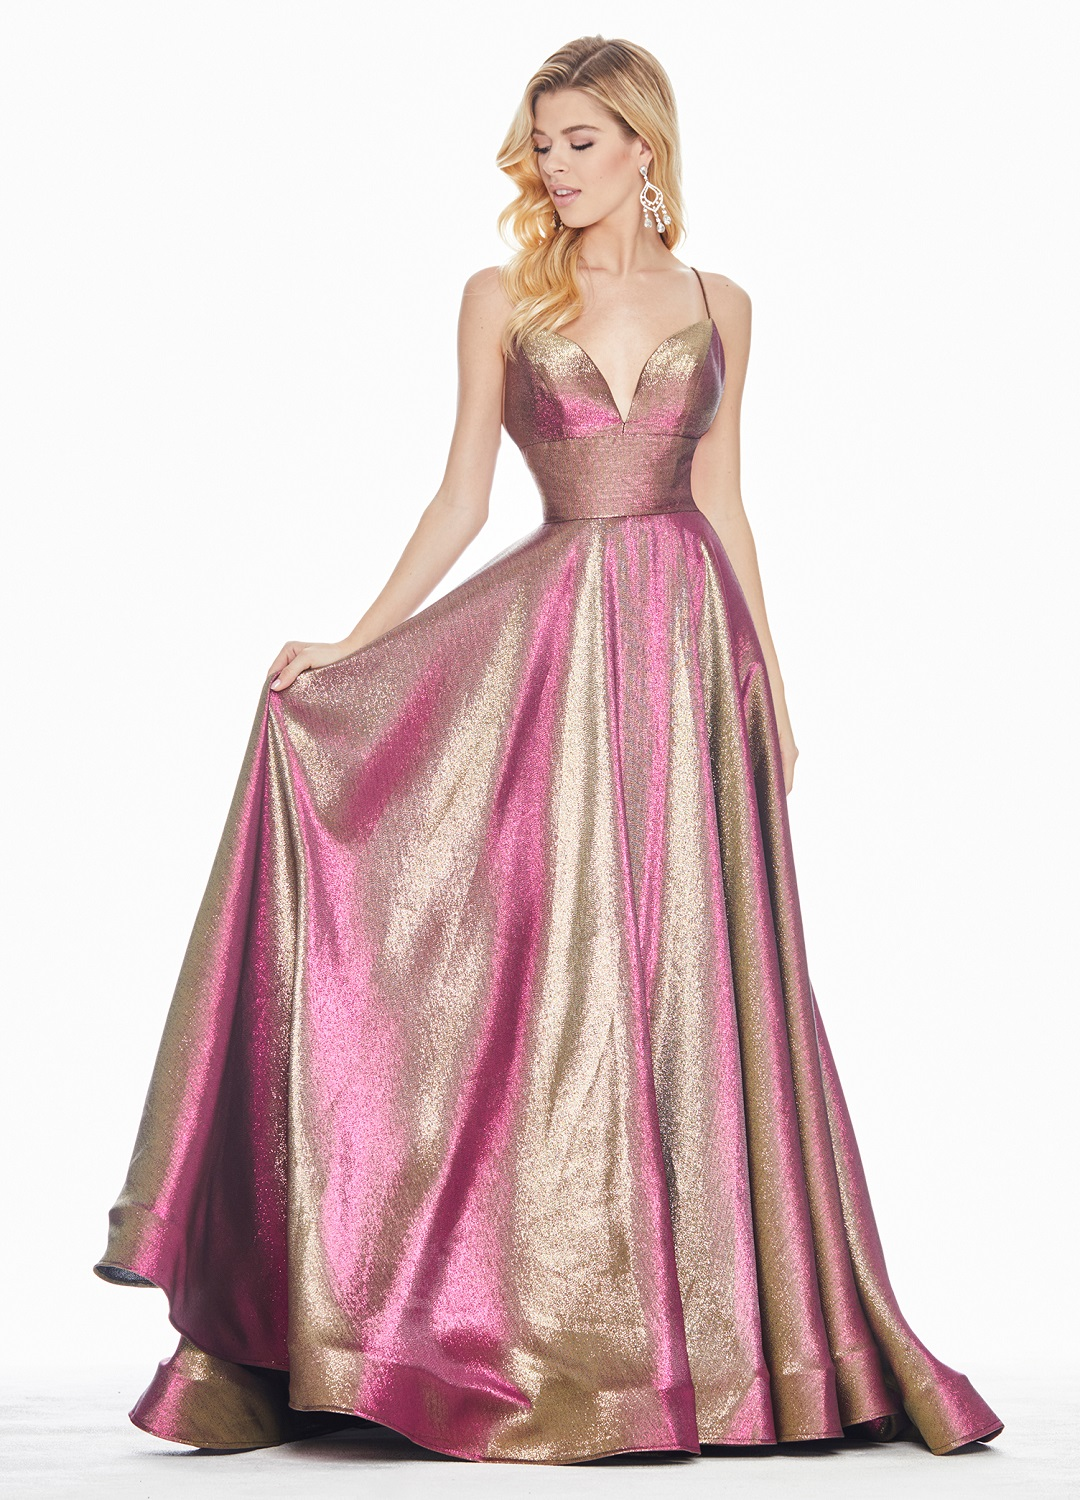 Ashley Lauren 1513 Fuchsia Metallic A-line Formal Dress